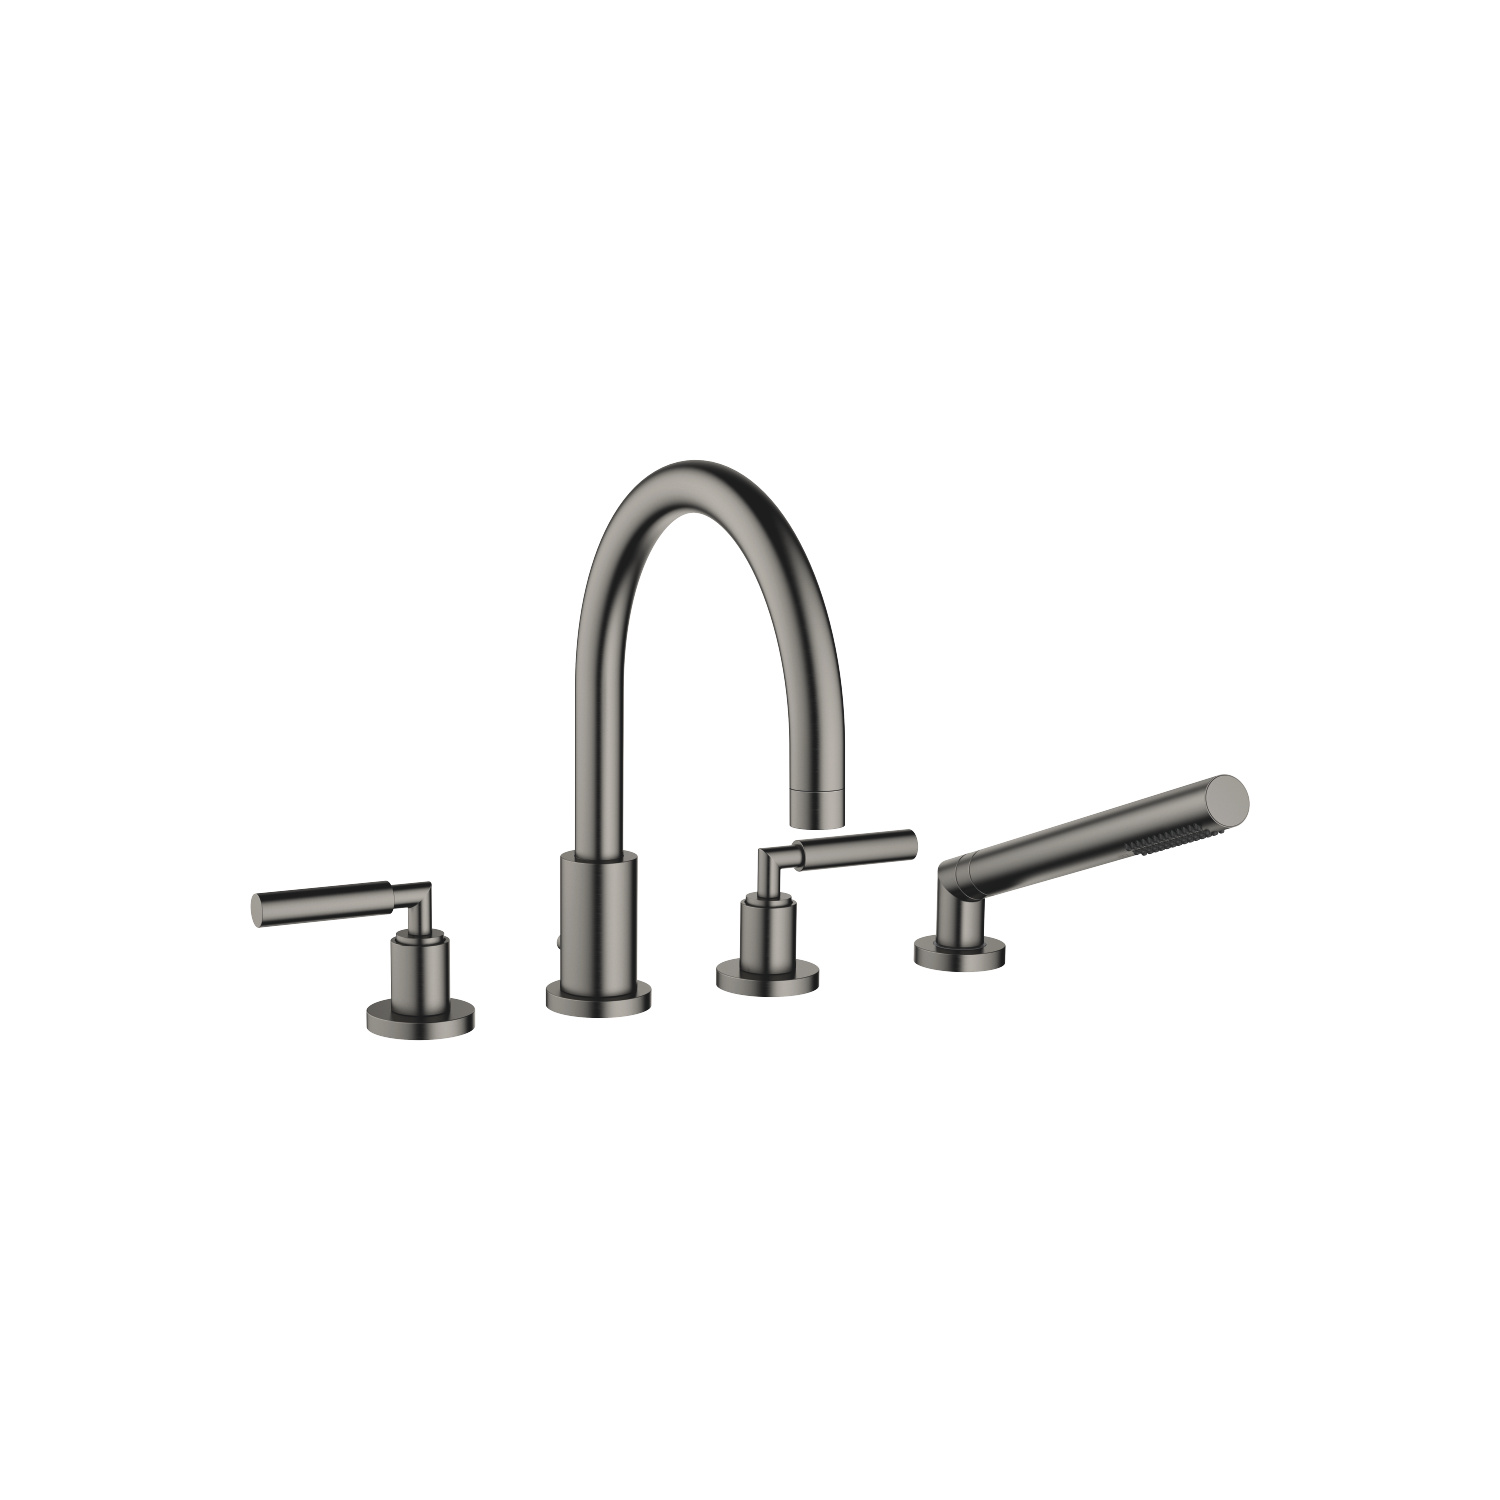 Deck-mounted tub mixer, with hand shower set for deck-mounted tub installation - Dark Platinum matte